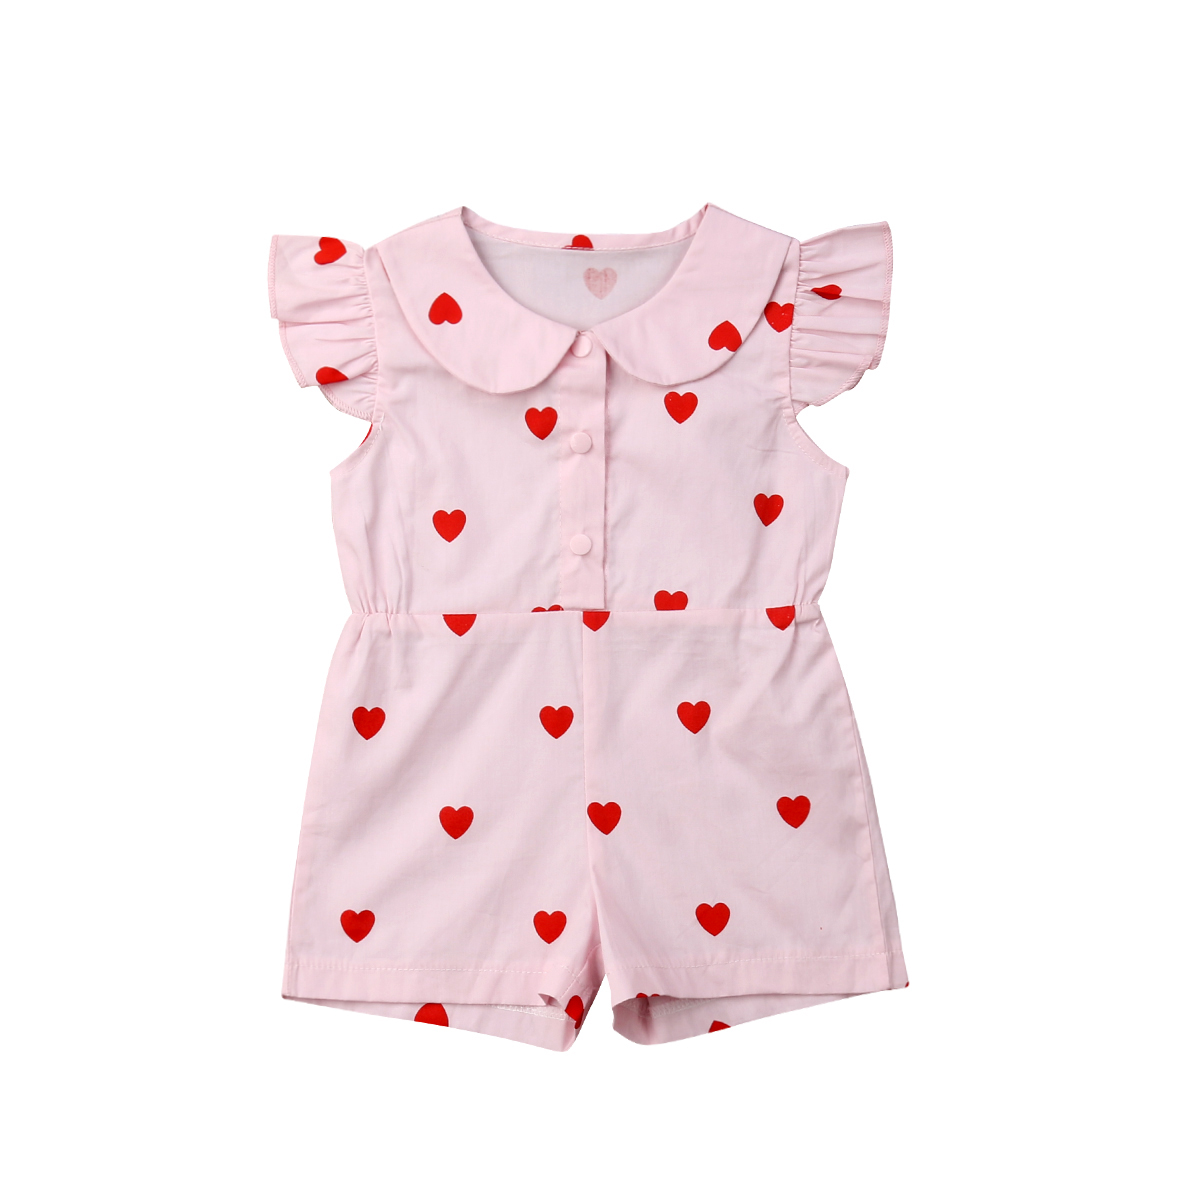 Digood for 0-24 Months Baby Toddler Baby Girls Boys Excavator Print Romper Jumpsuit Clothes Set